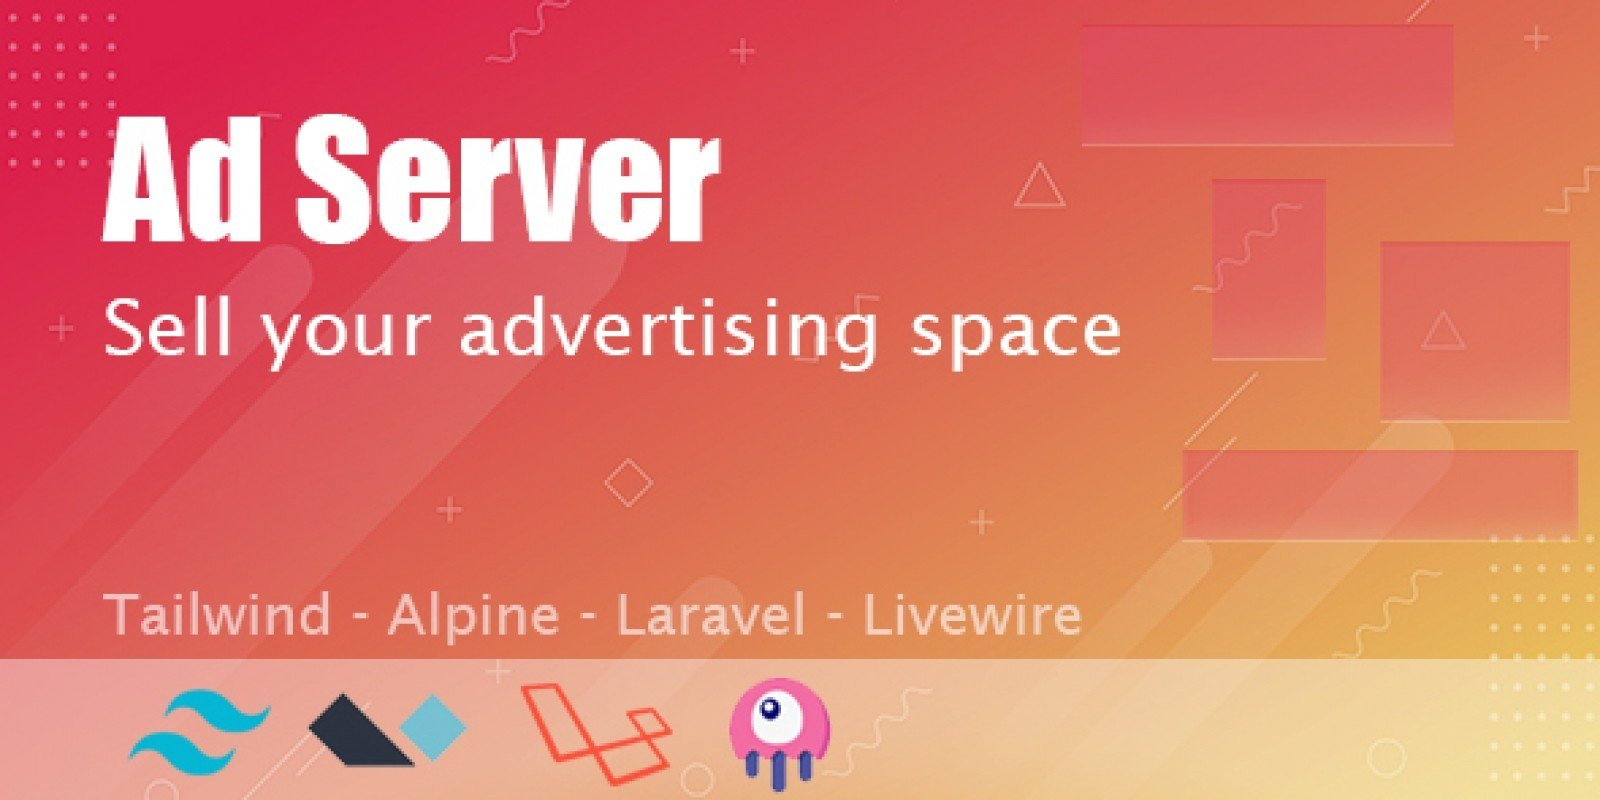 AdServer - Sell Your Advertising Space